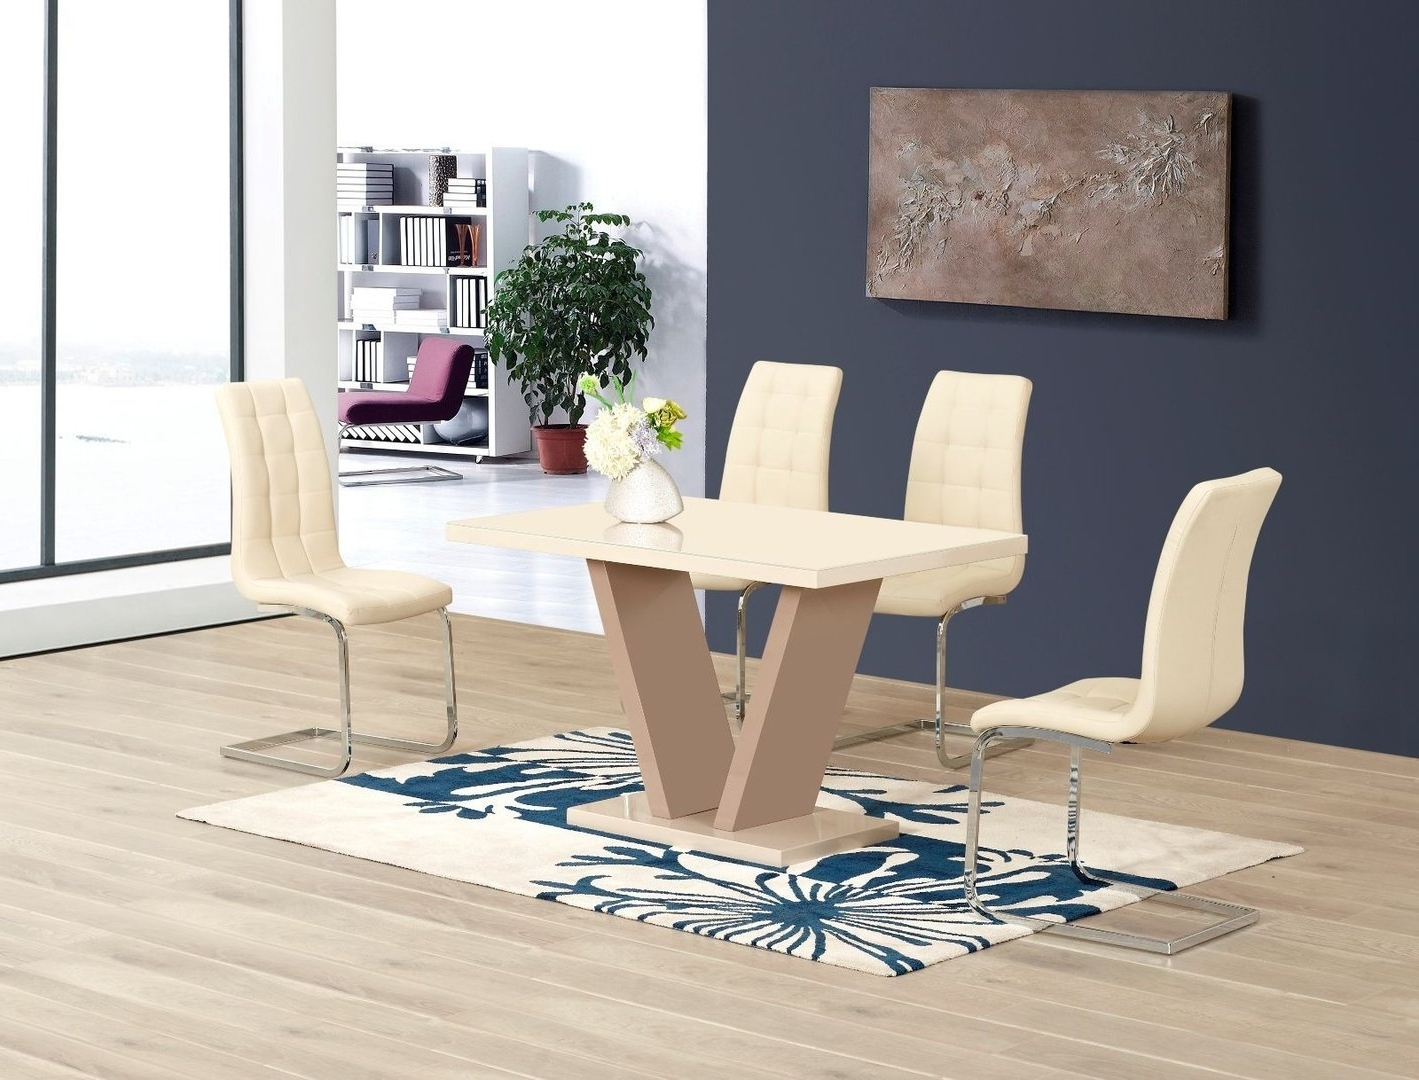 2017 Cream High Gloss Glass Dining Table And 6 Chairs – Homegenies Within Black Glass Dining Tables With 6 Chairs (Gallery 25 of 25)